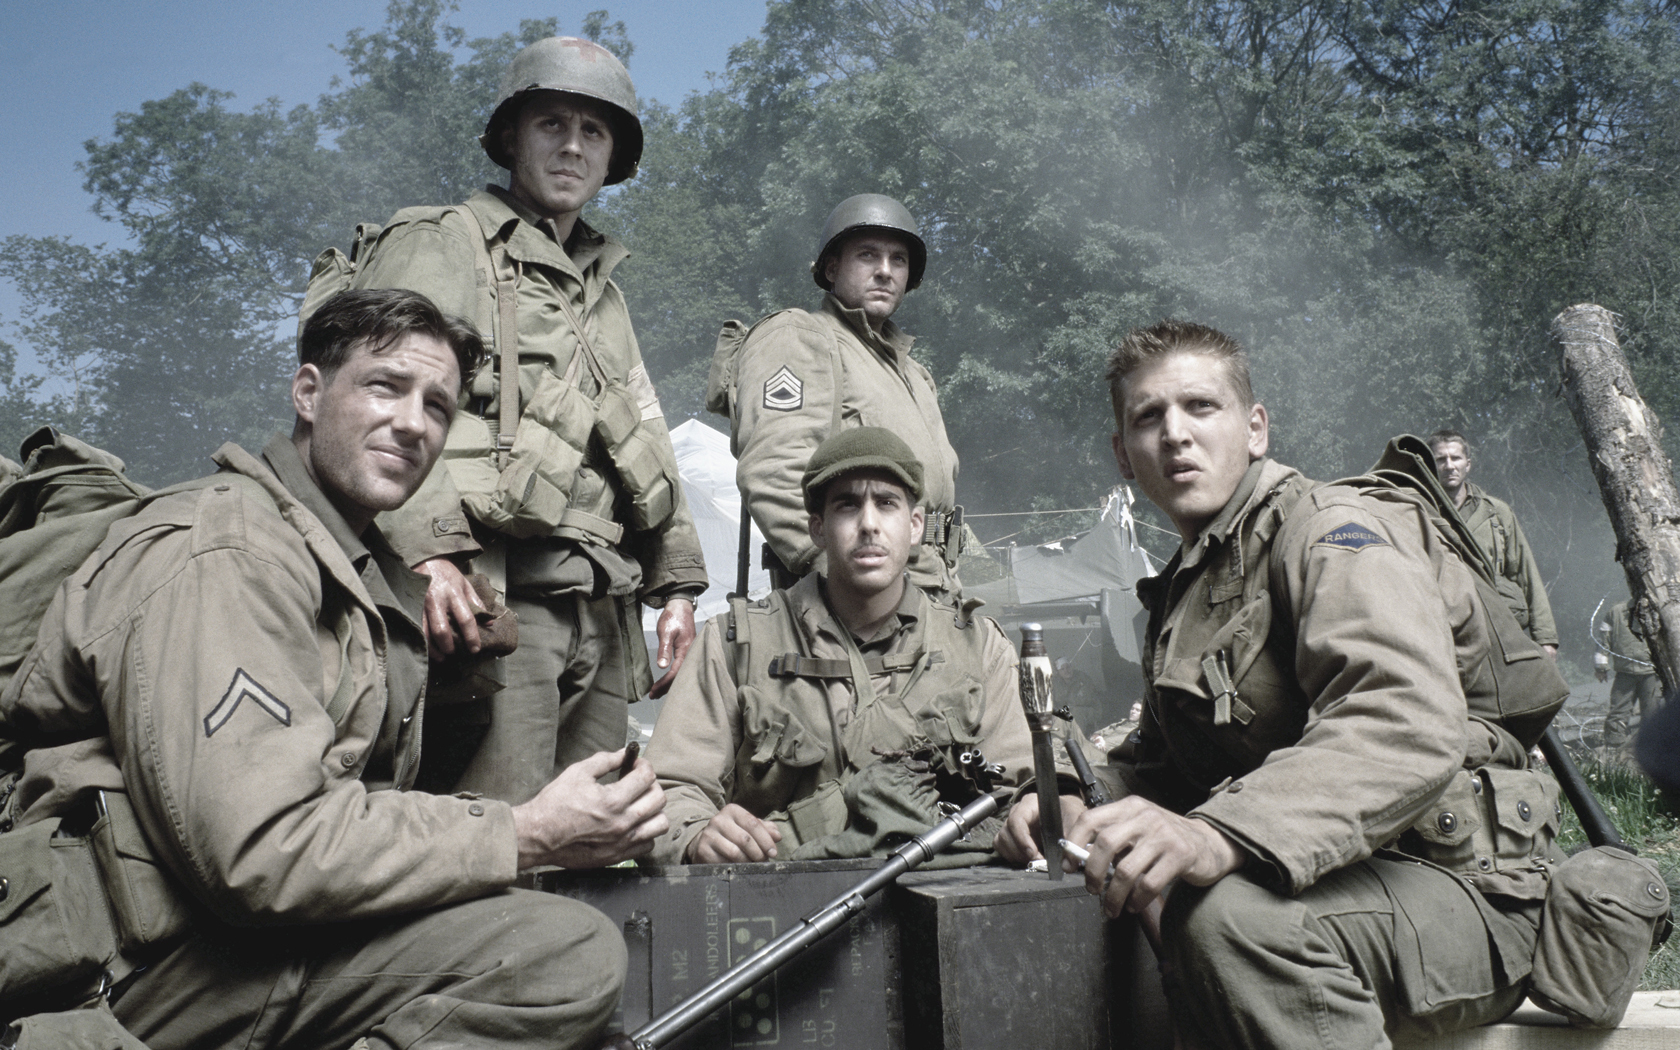 a focus on character captain john miller in the movie saving private ryan List of saving private ryan characters, with pictures when available these characters from the movie saving private ryan are ordered by their prominence in the film, so the most recognizable roles are at the top of the list.